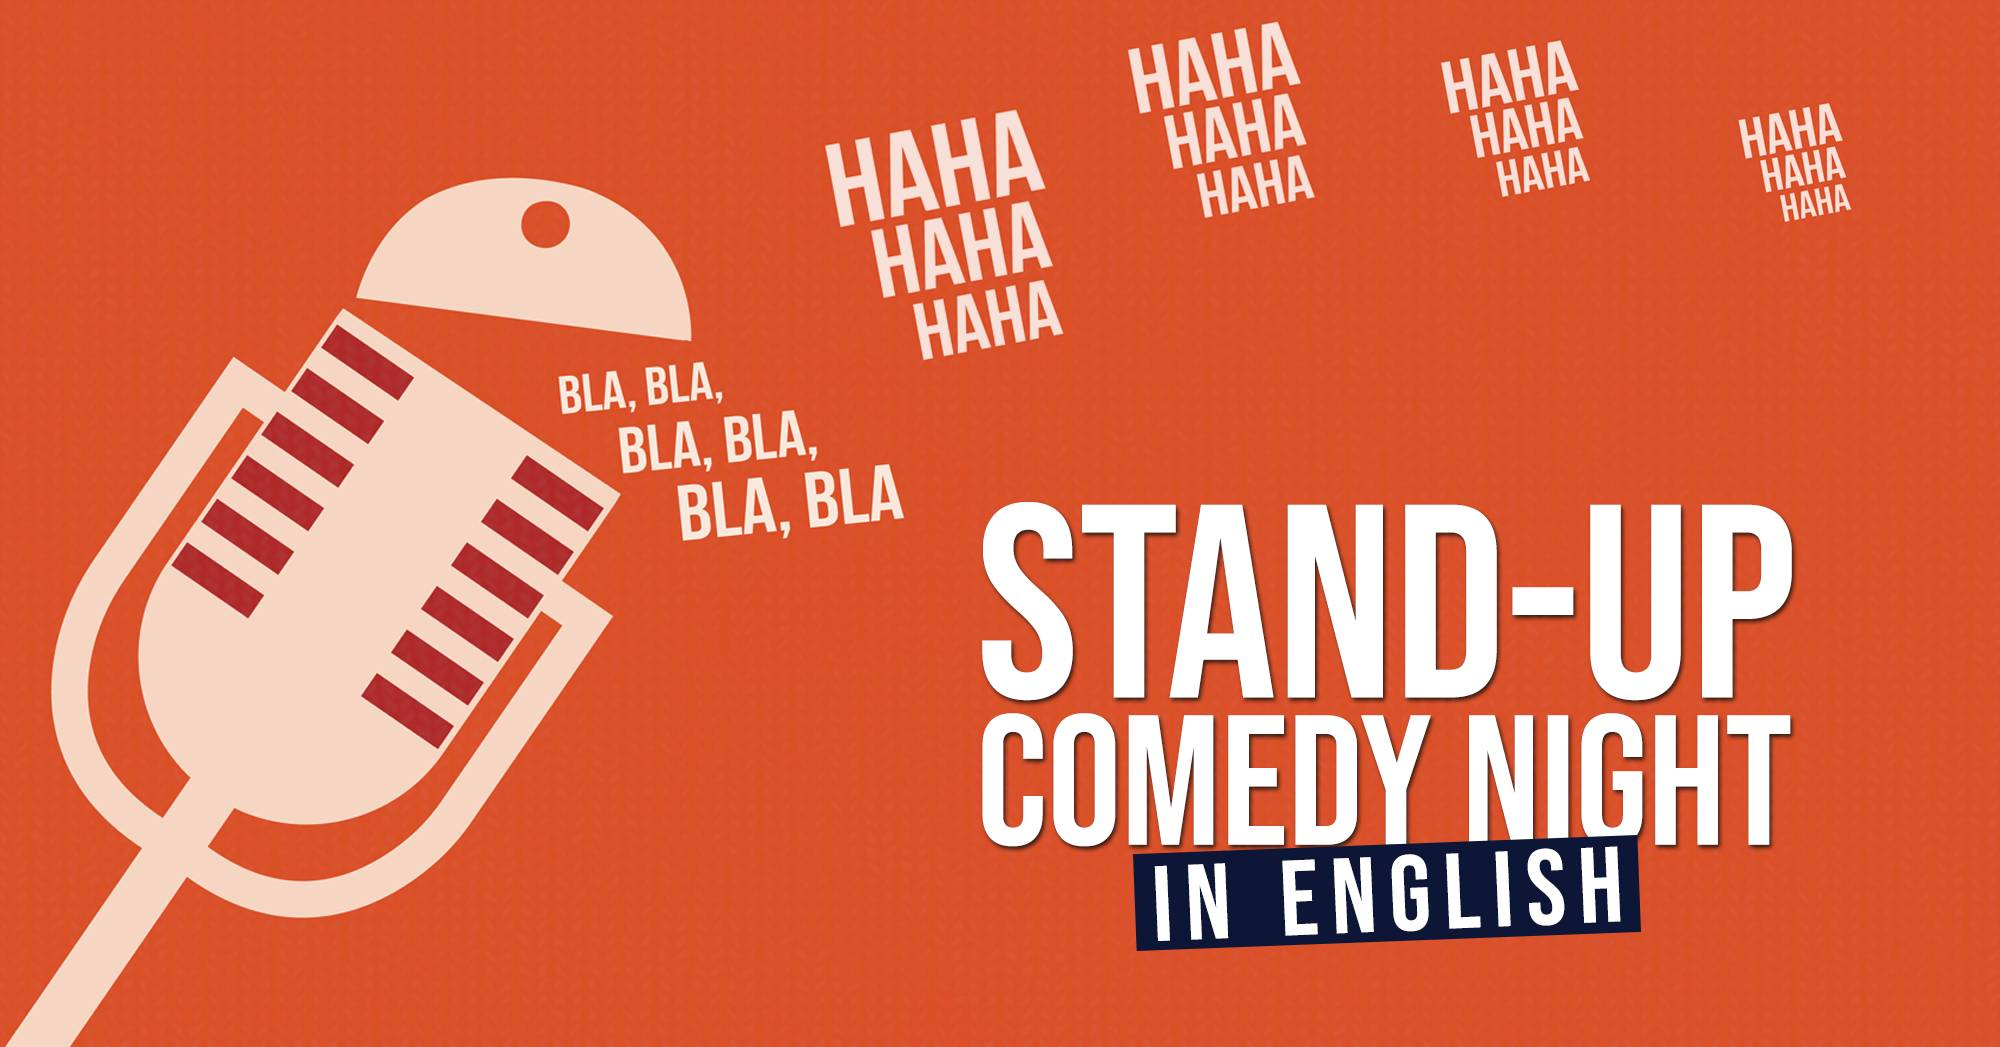 Stand-up comedy night in English